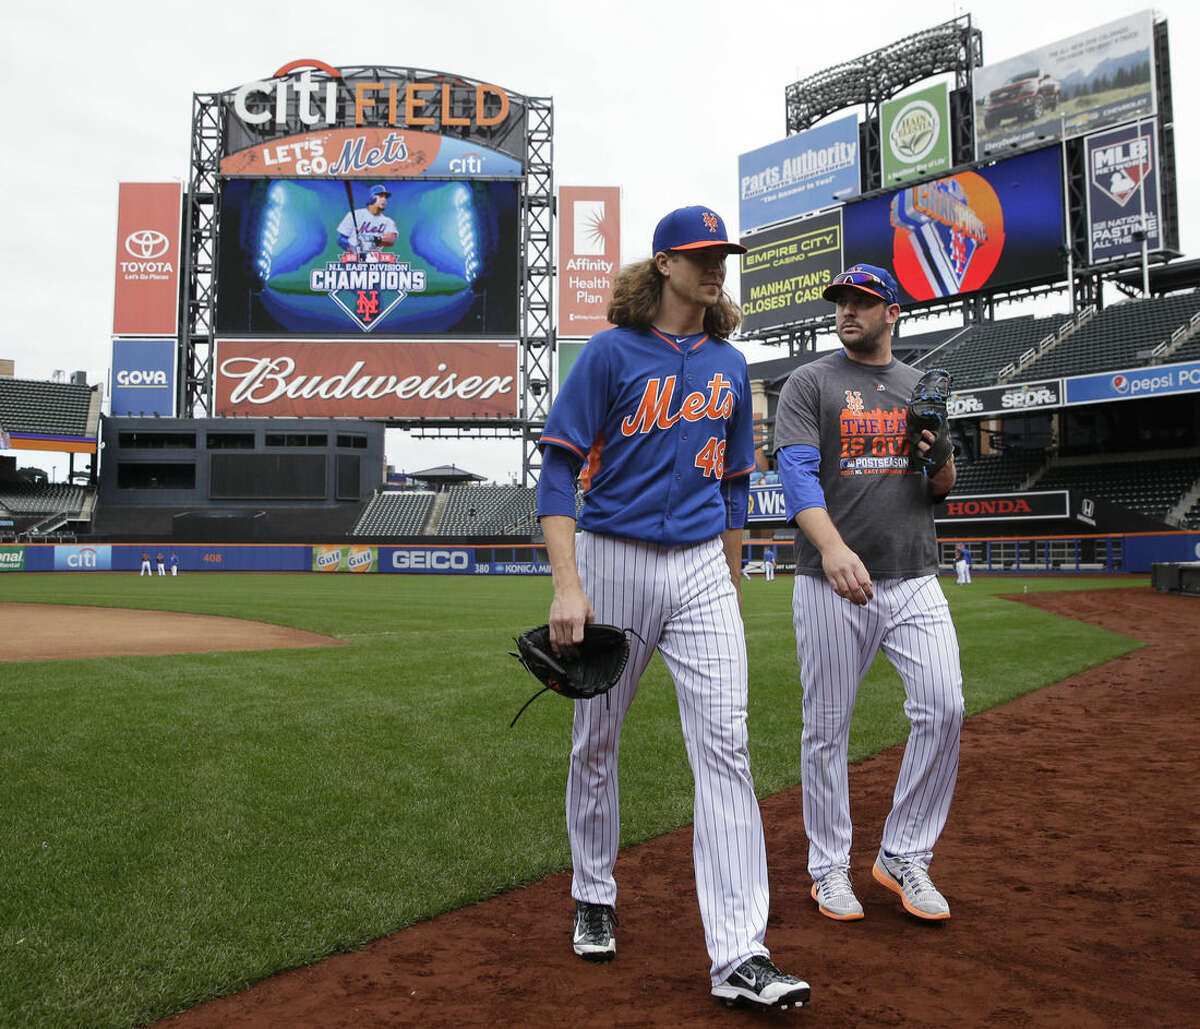 New York Mets pitchers Jacob deGrom, left, and Matt Harvey leave the field during a workout at Citi Field, Wednesday, Oct. 7, 2015 in New York. The Mets will play the Los Angeles Dodgers in a National League Division Series starting Friday in Los Angeles. (AP Photo/Seth Wenig)